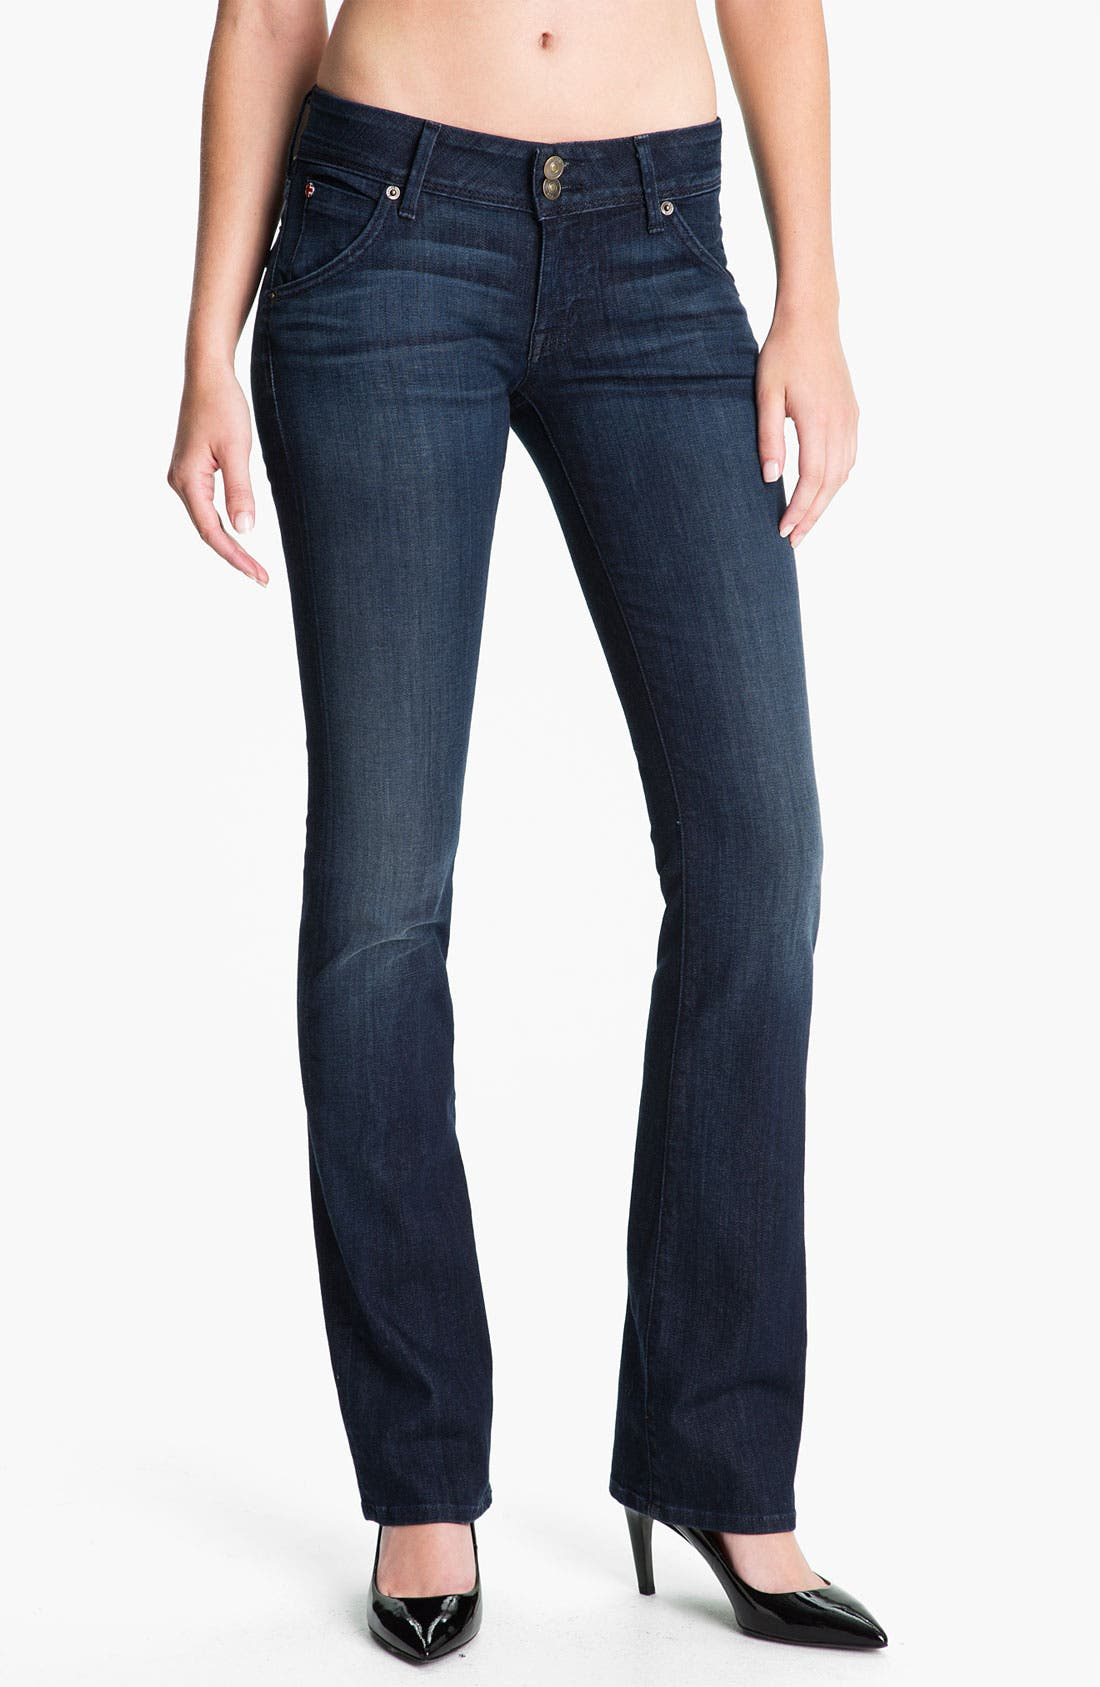 Alternate Image 1 Selected - Hudson Jeans 'Beth' Baby Bootcut Jeans (Siouxsie)